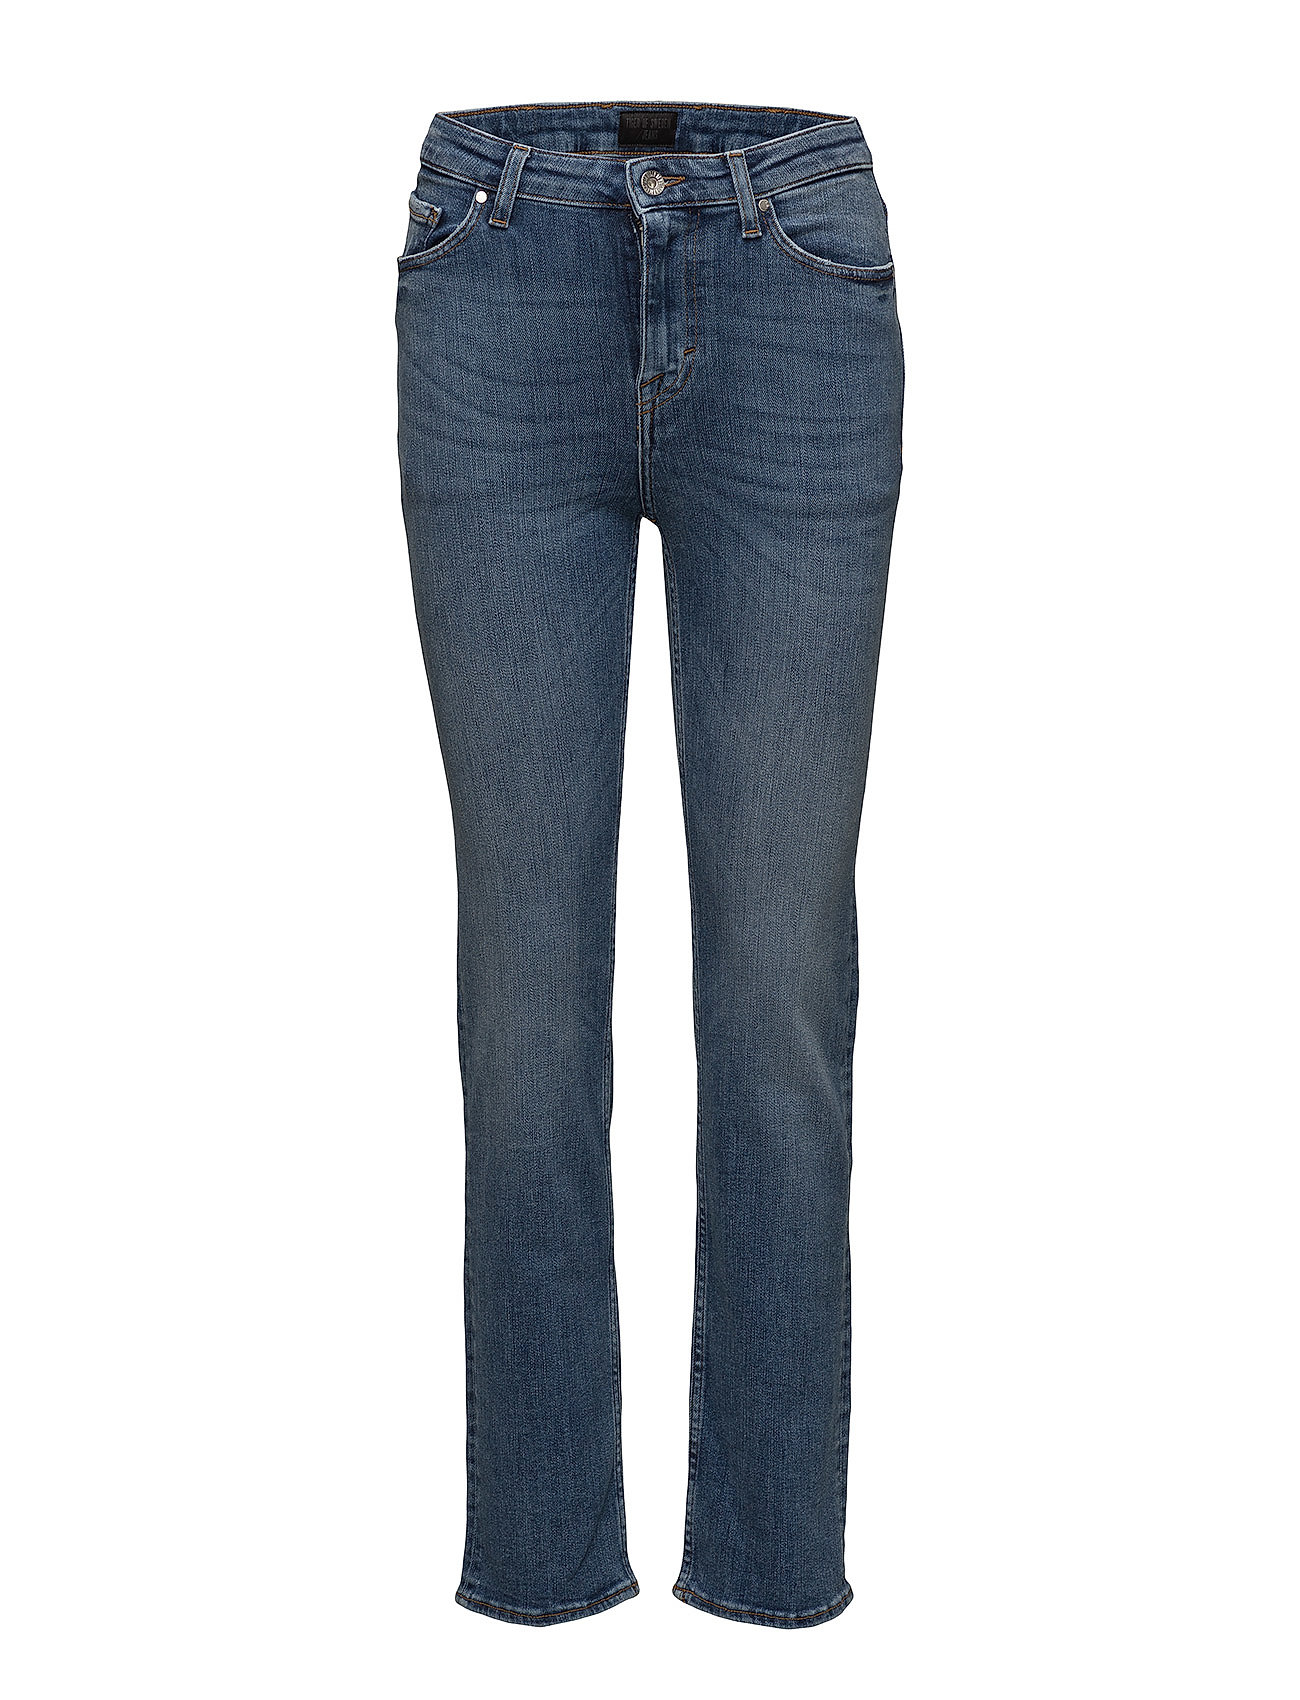 Amymedium BlueTiger Jeans Of Amymedium BlueTiger Sweden 29HIWEDY